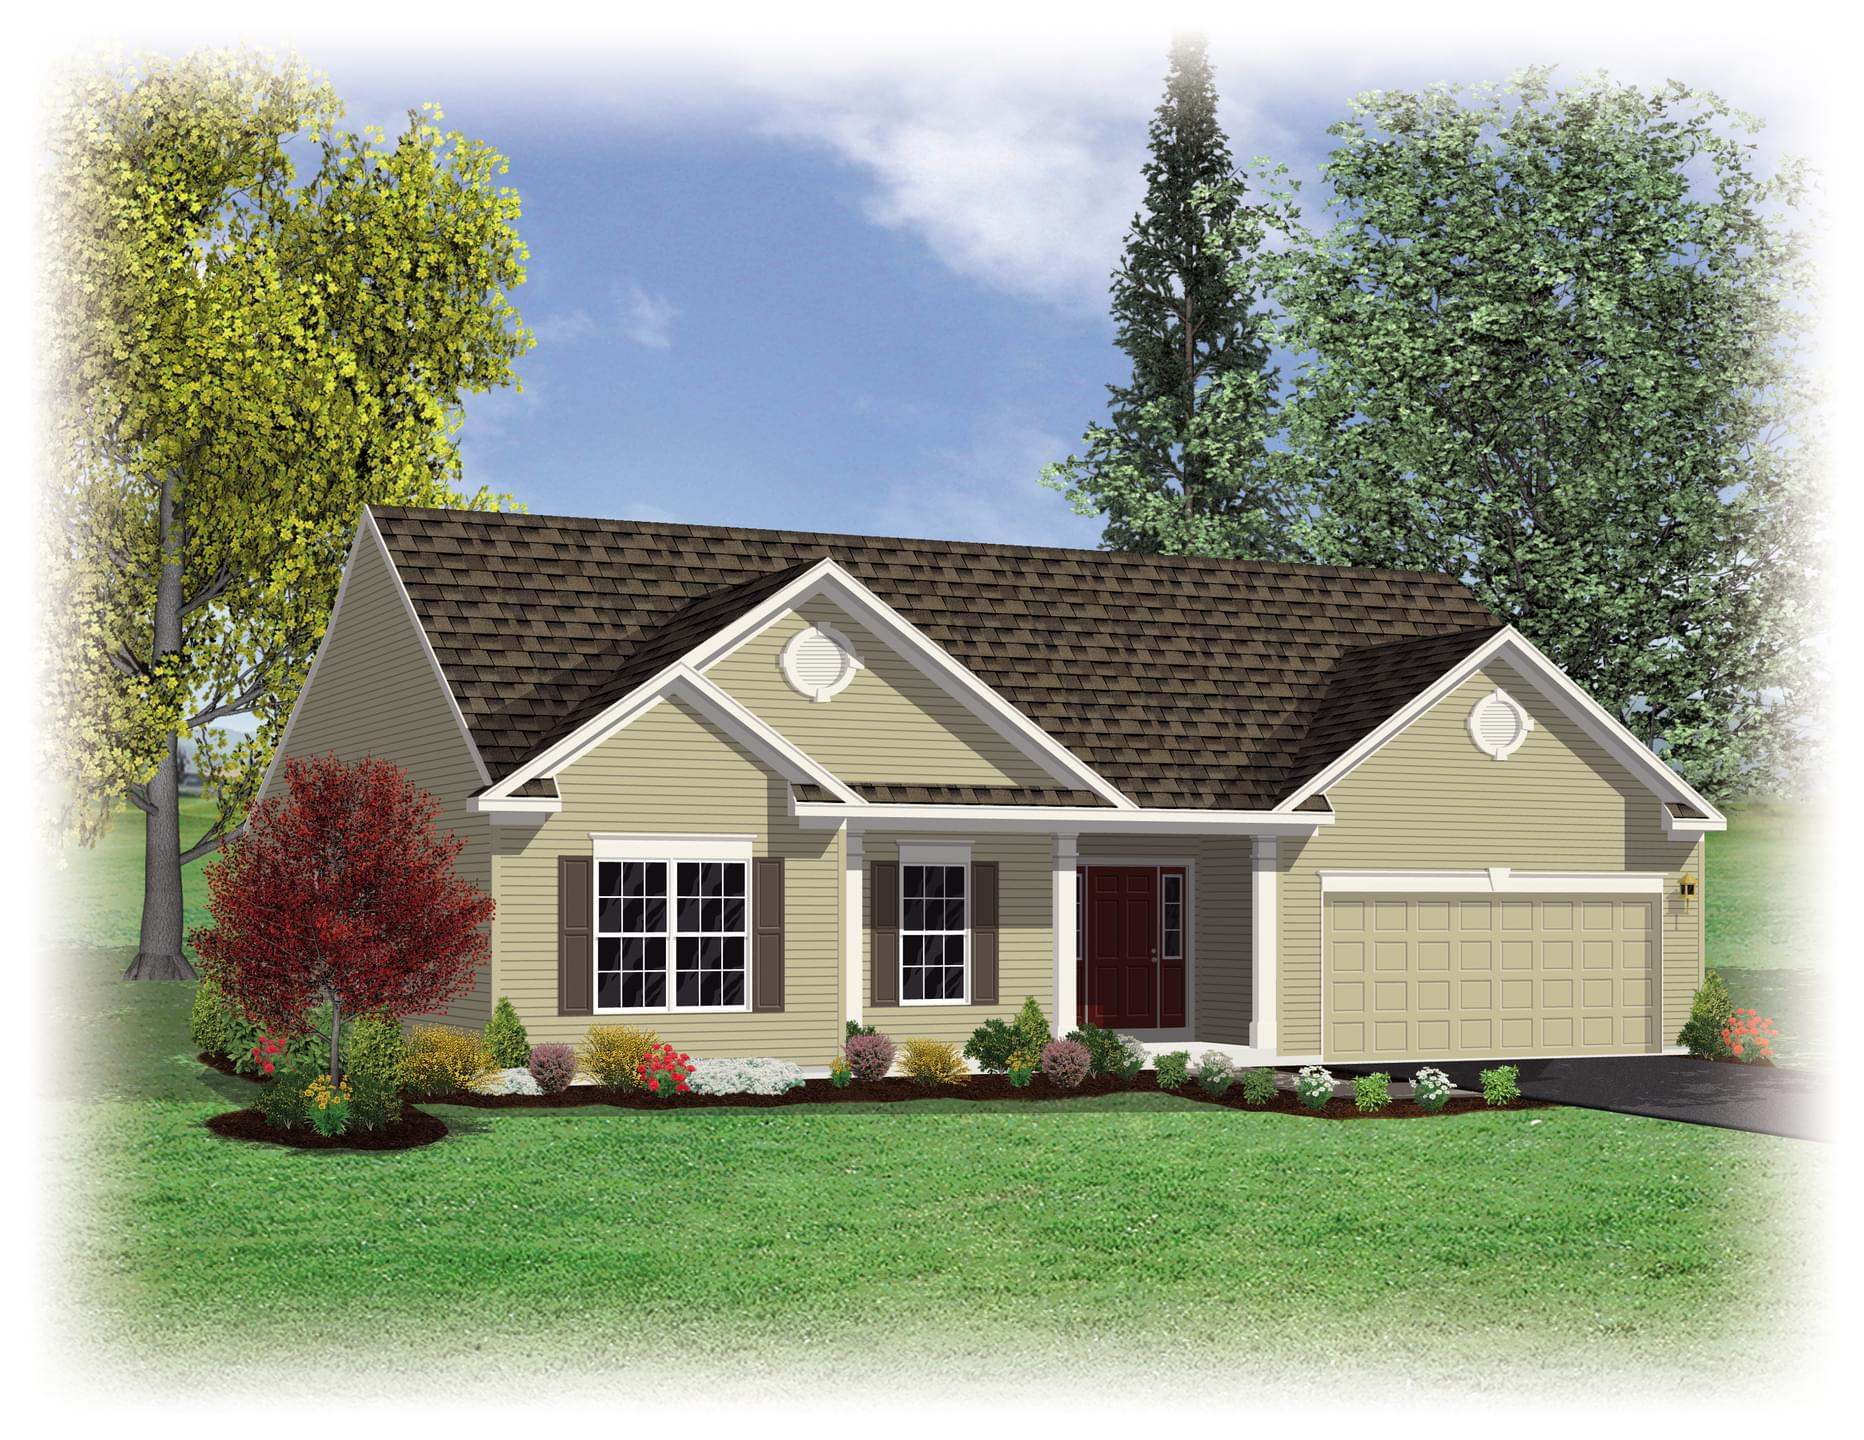 Berks Homes Elevation Image Longwood